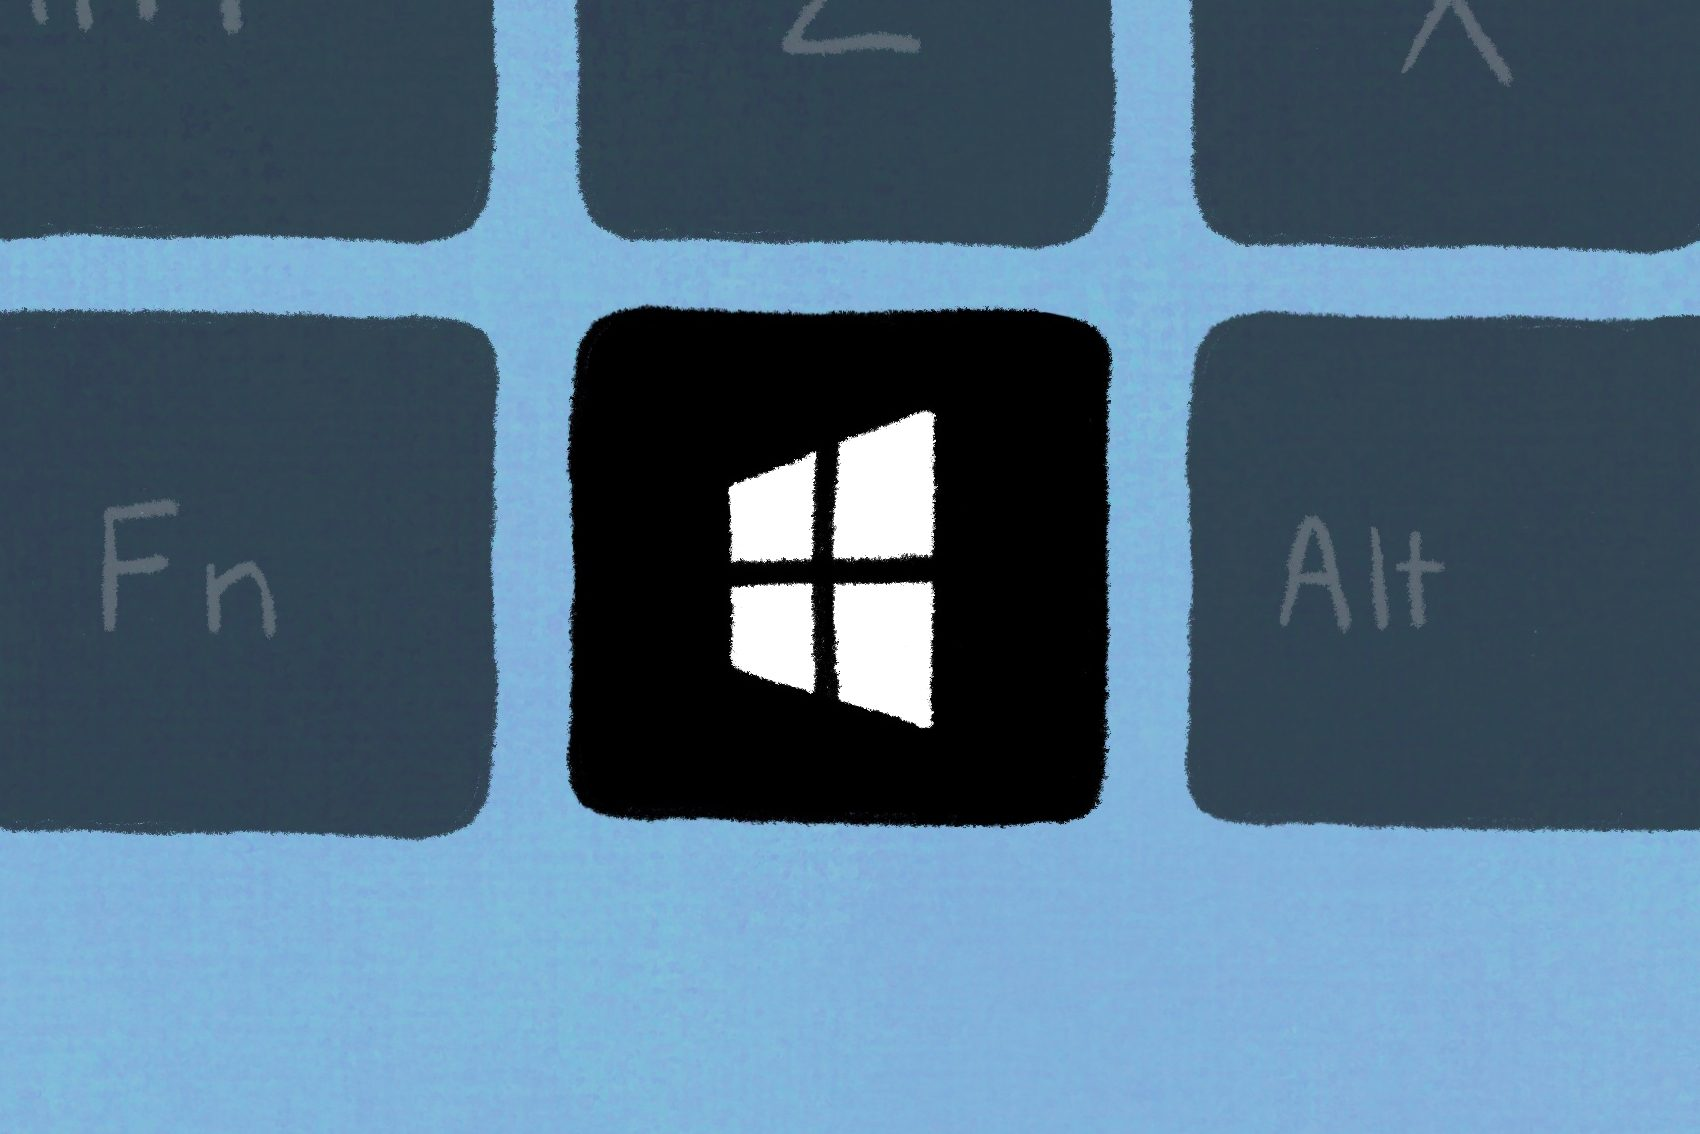 Windows keyboard with the windows key illuminated to represent keyboard shortcuts